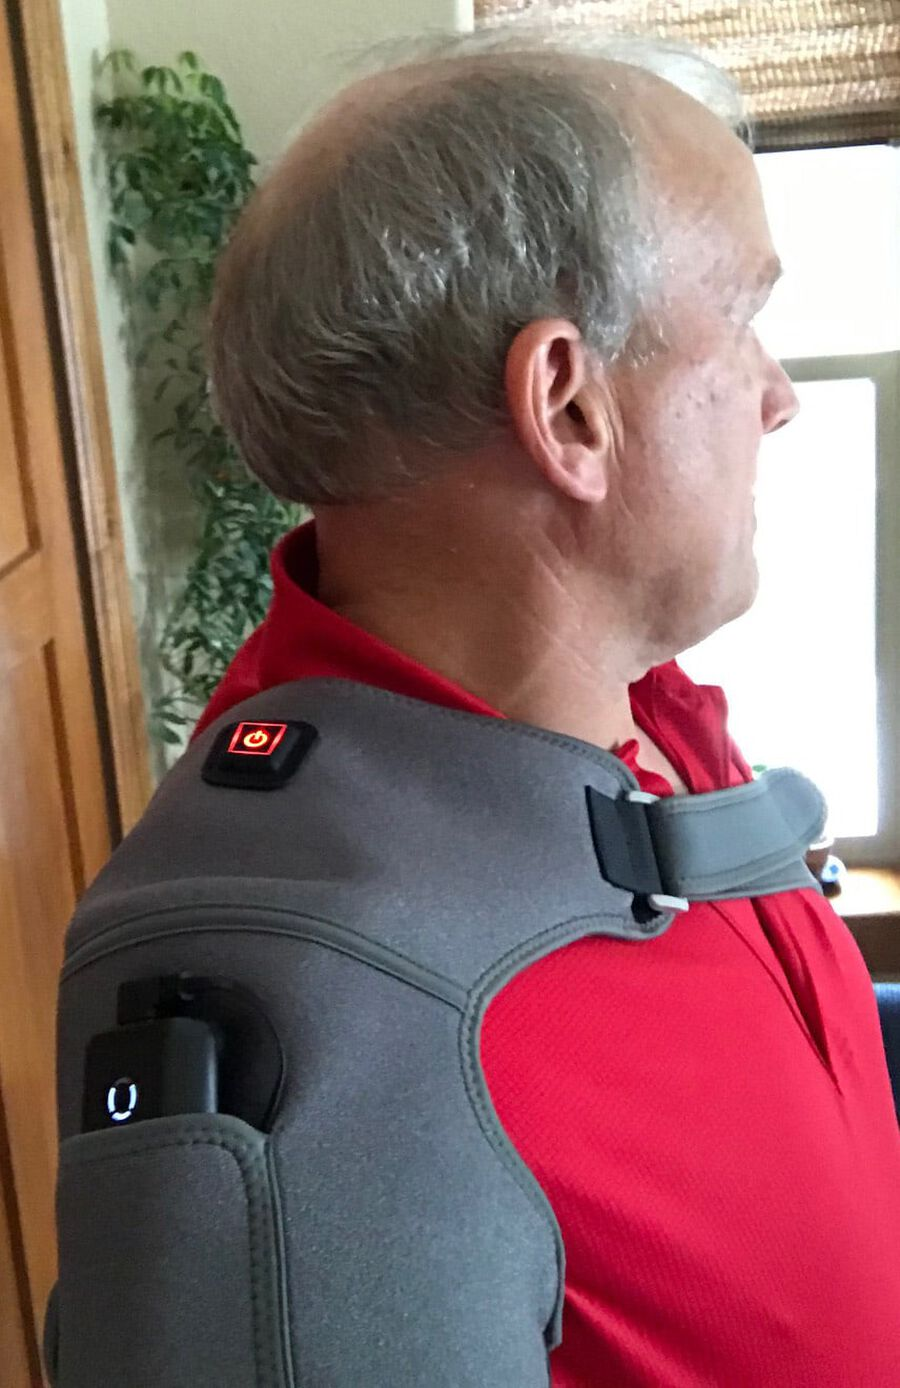 Battle Creek Embrace ™ Relief Shoulder Wrap – Portable, 3 Temperature Settings, Auto Shut Off, Wireless & Rechargeable Wrap, Battery-Operated Heat Therapy Wrap for Rotator Cuff and Shoulder Pain Relief, , large image number 28